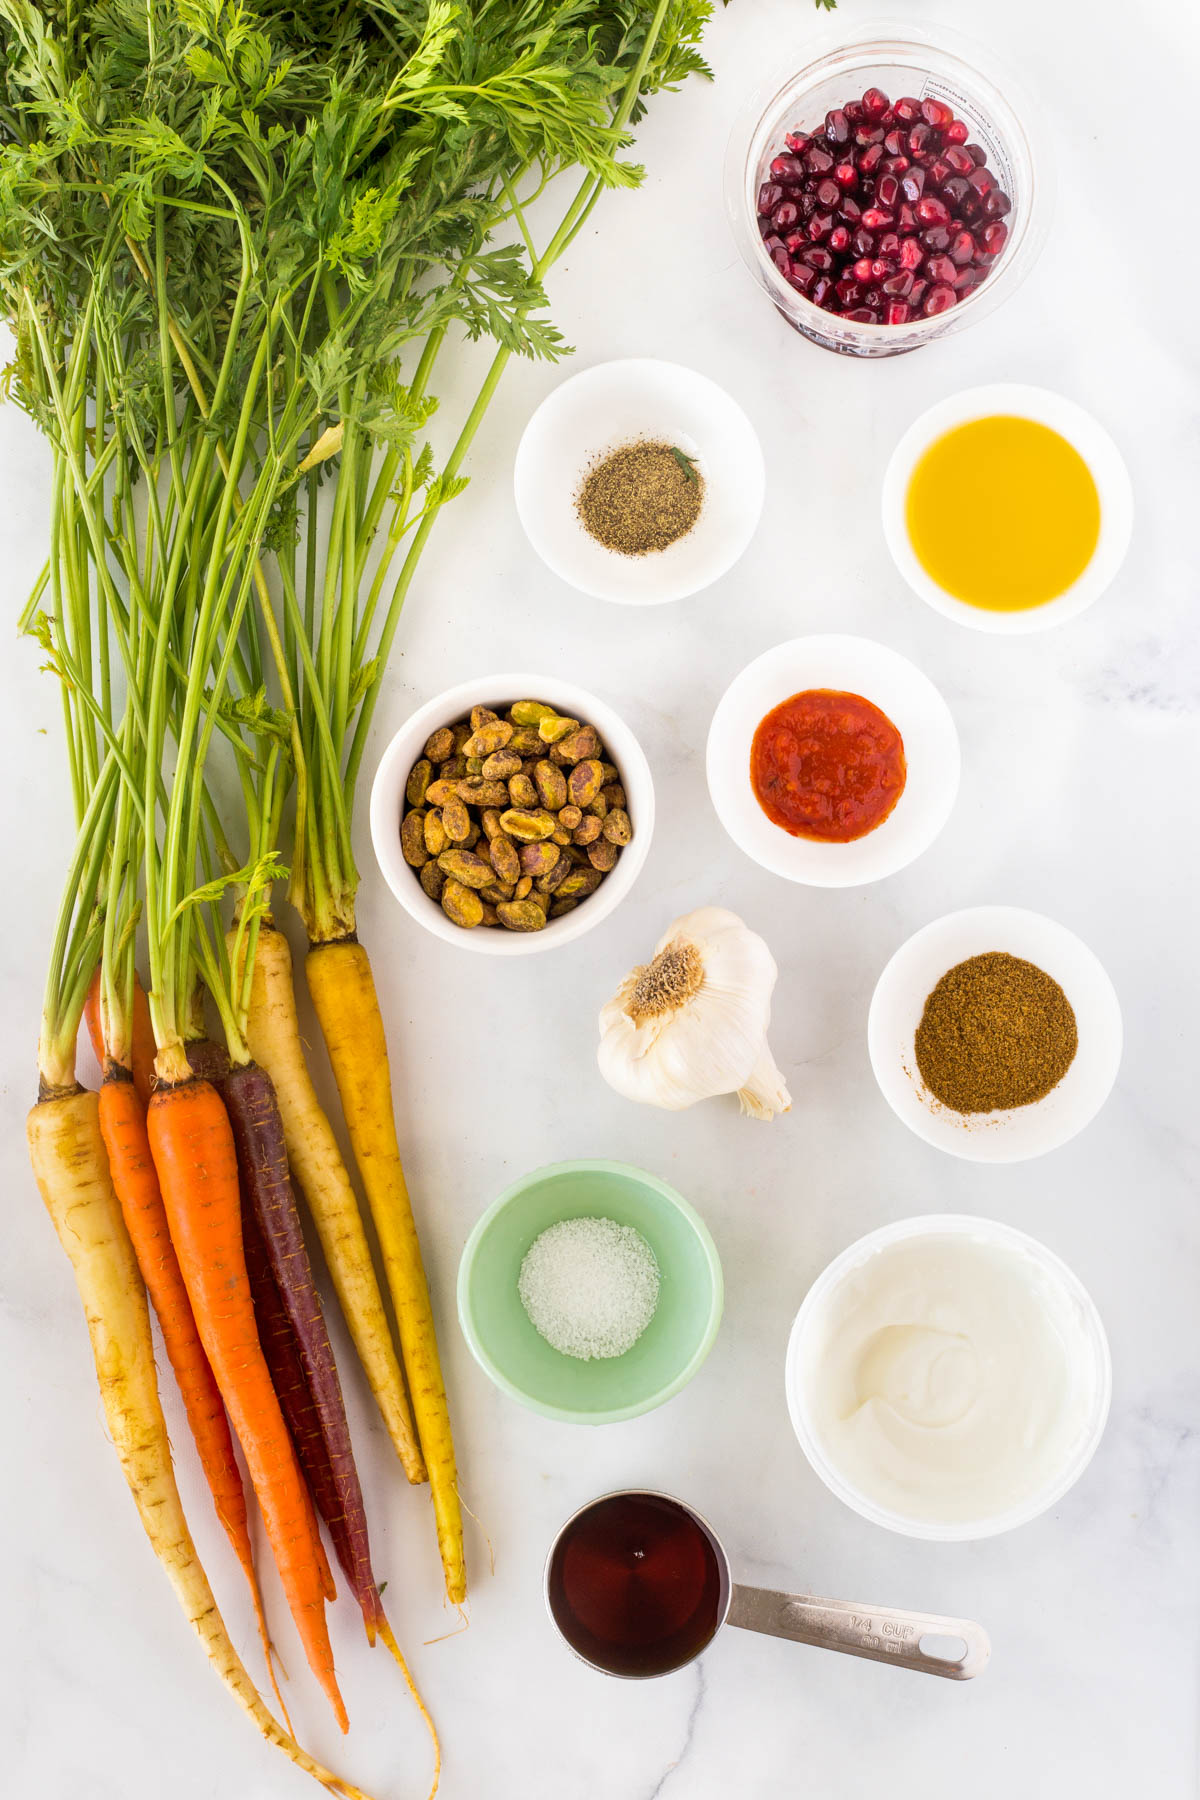 All ingredients to make harissa grilled carrots on a white countertop